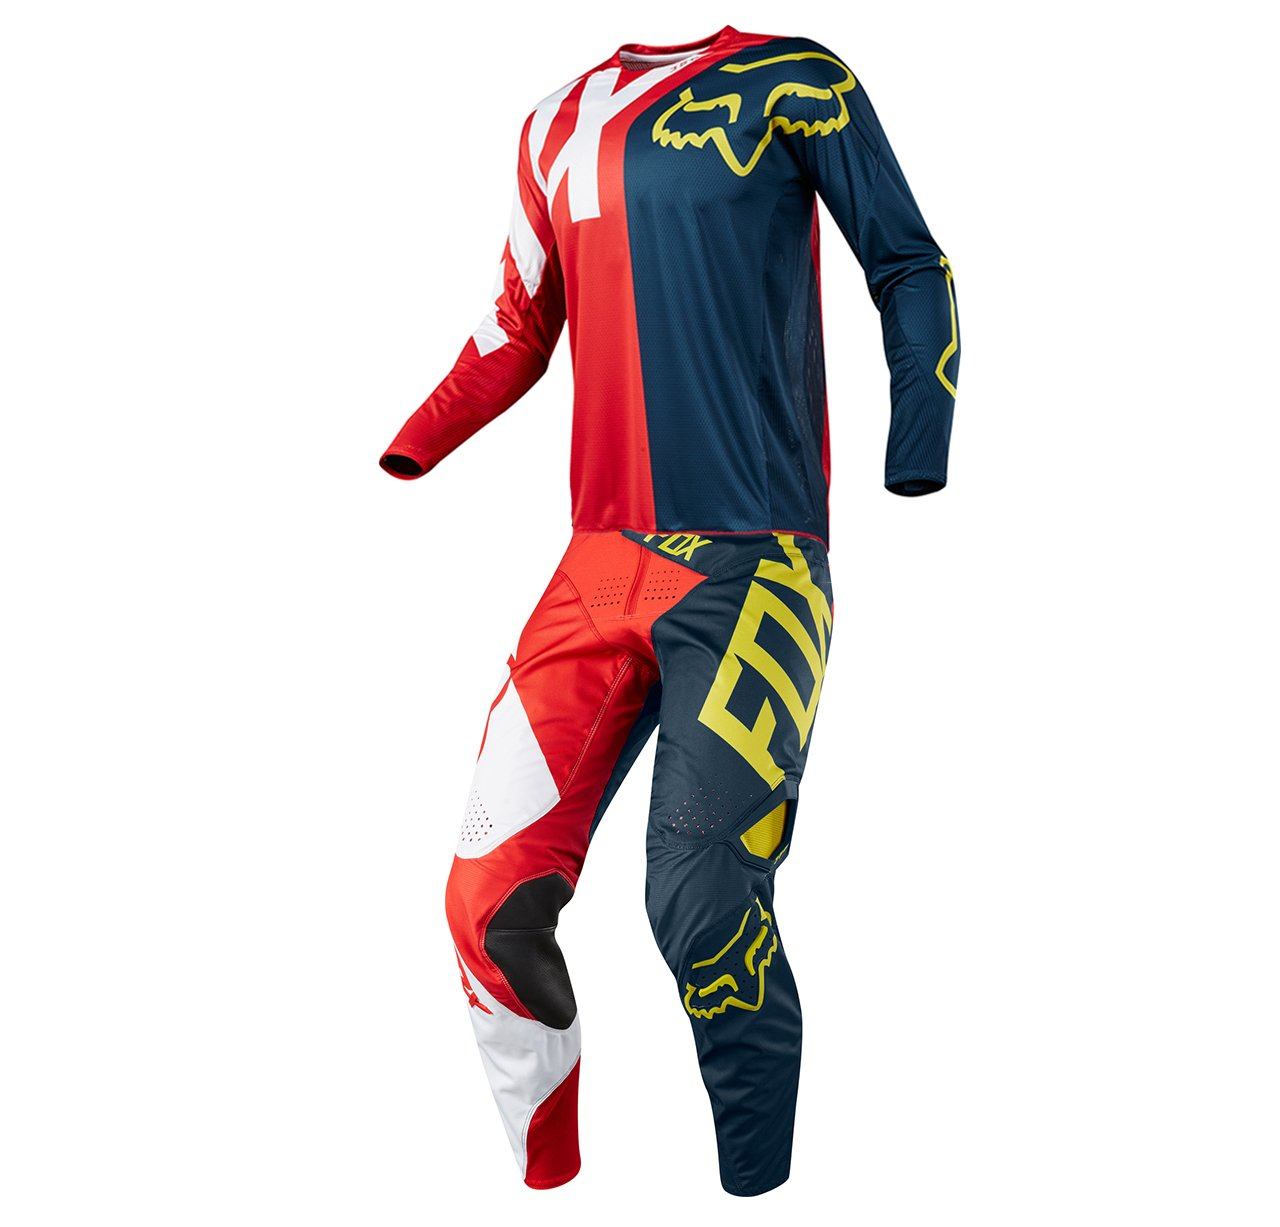 Fox Racing 360 Preme Navy & Red Jersey/ Pant Youth Combo - Size Y-LARGE/ 26W